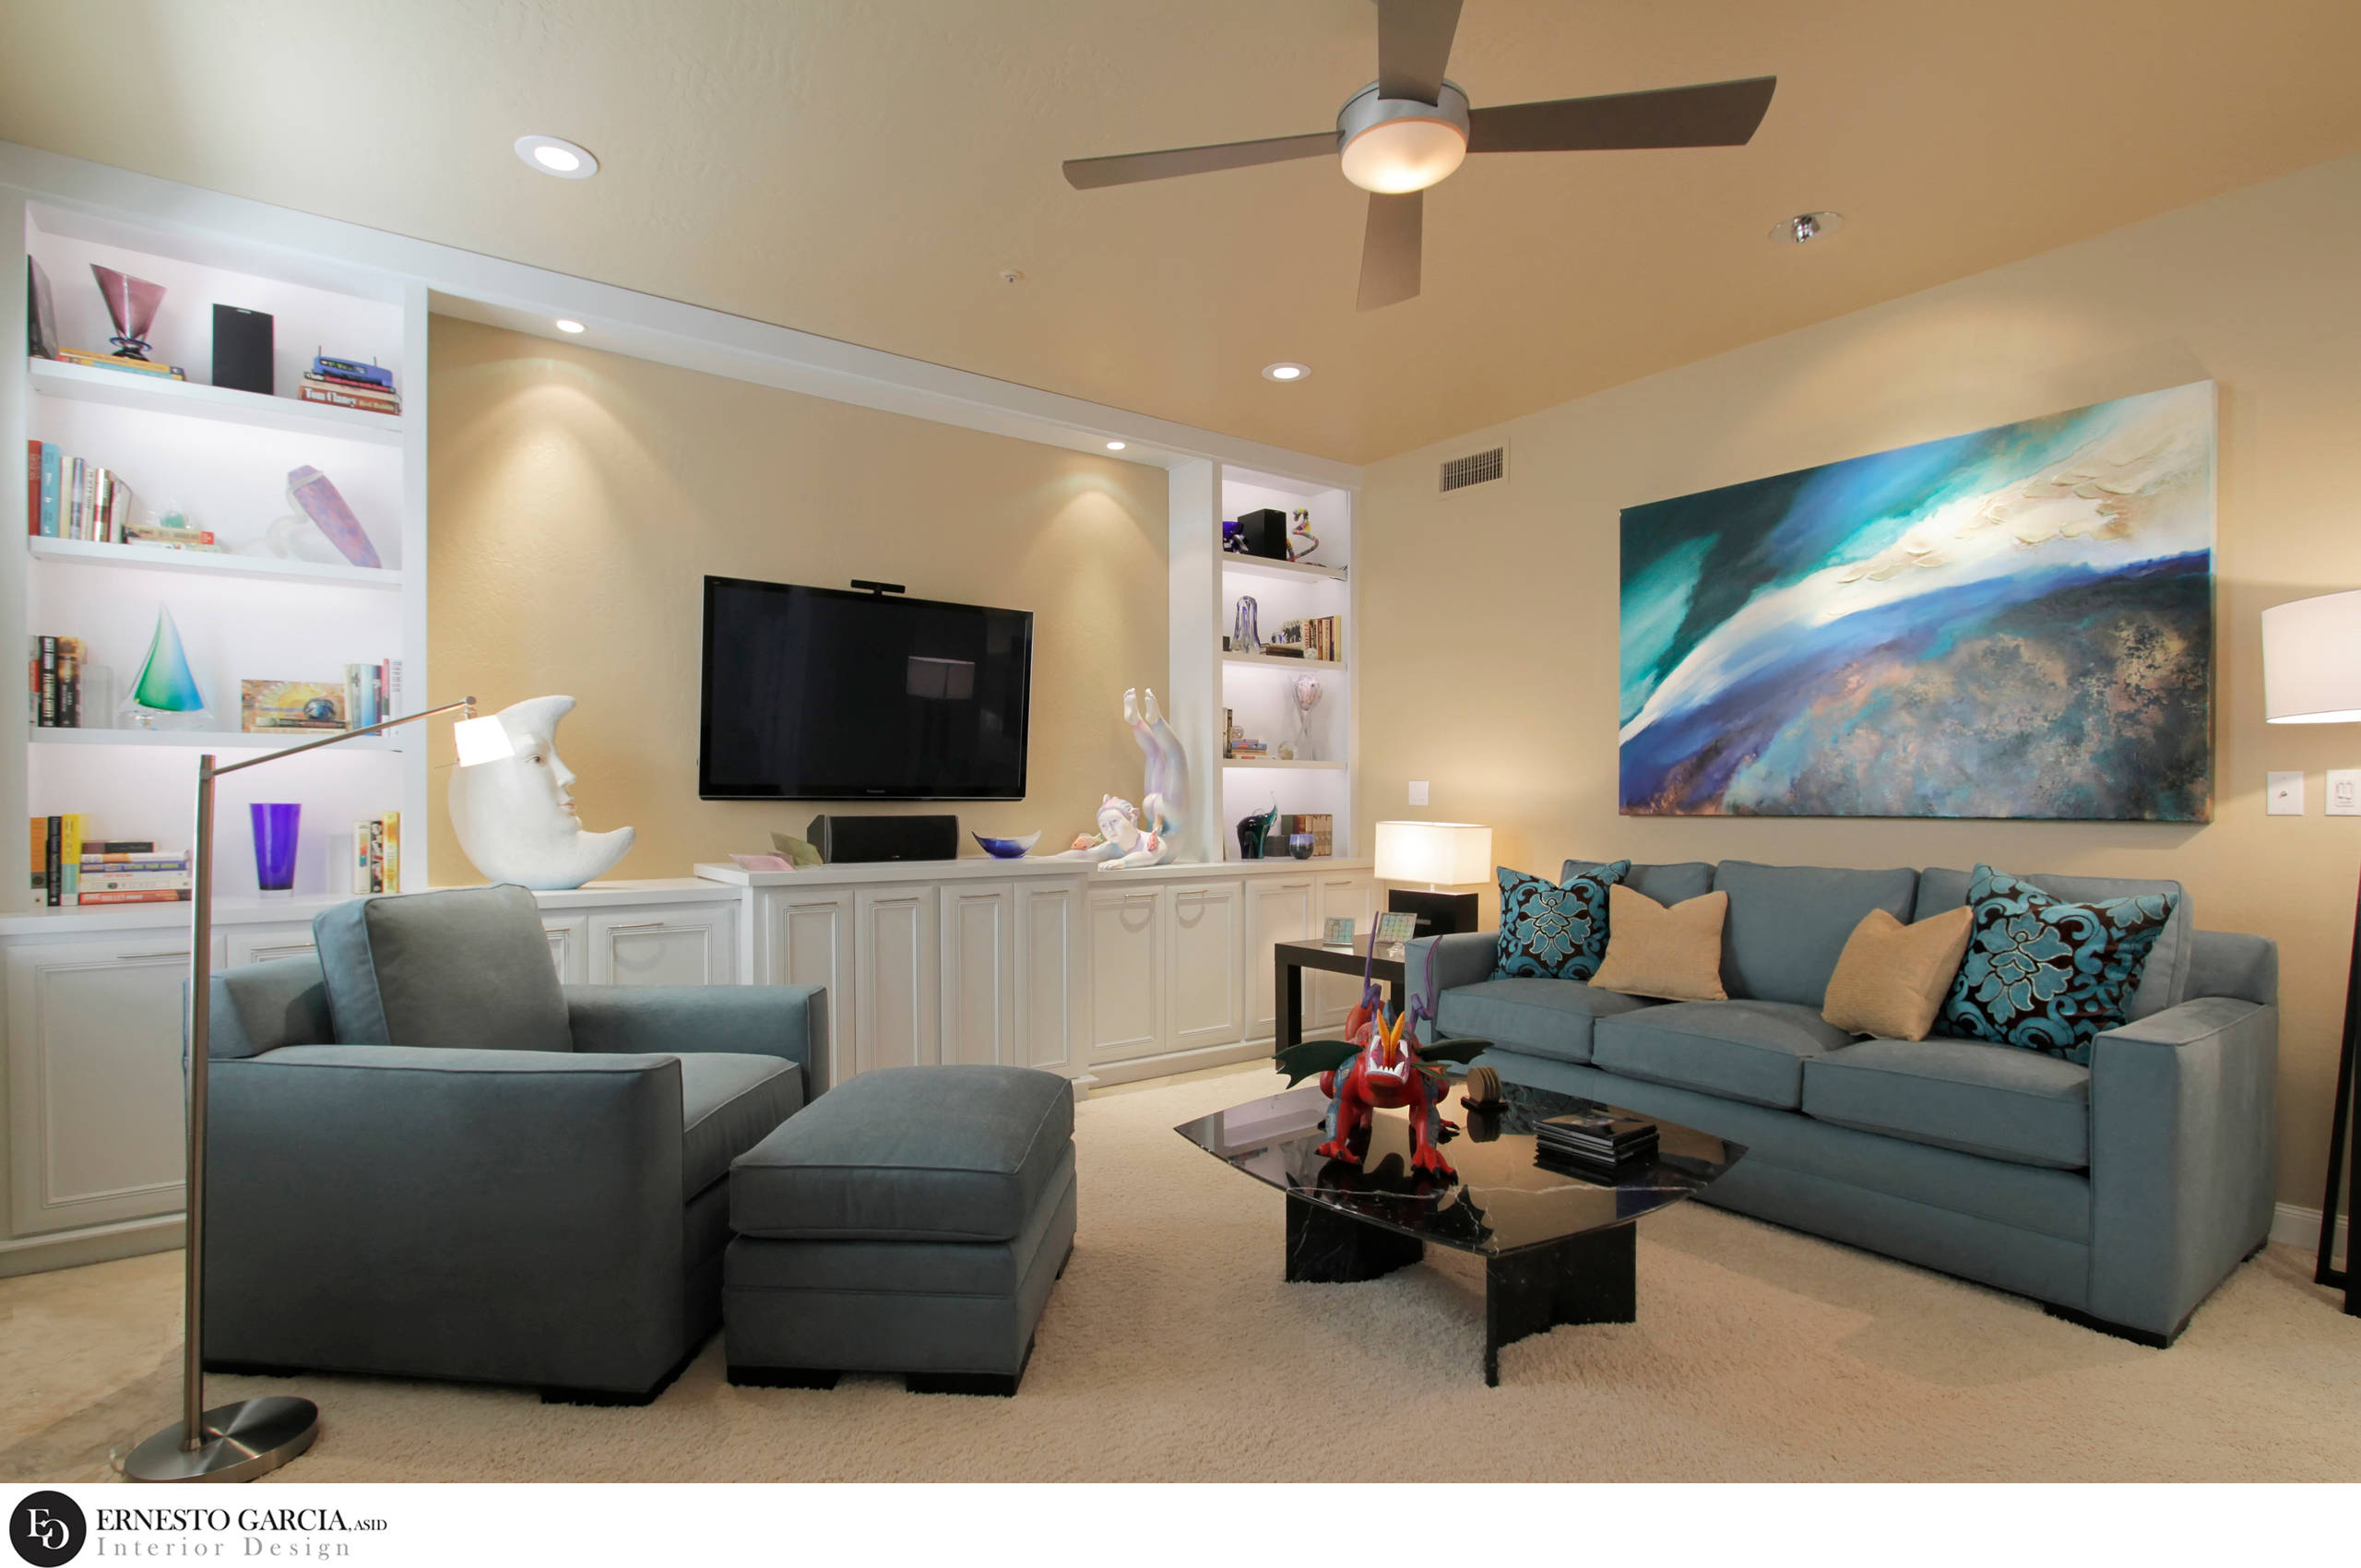 2012 FIRST PLACE WINNER * ASID AWARD - Family Room - General View